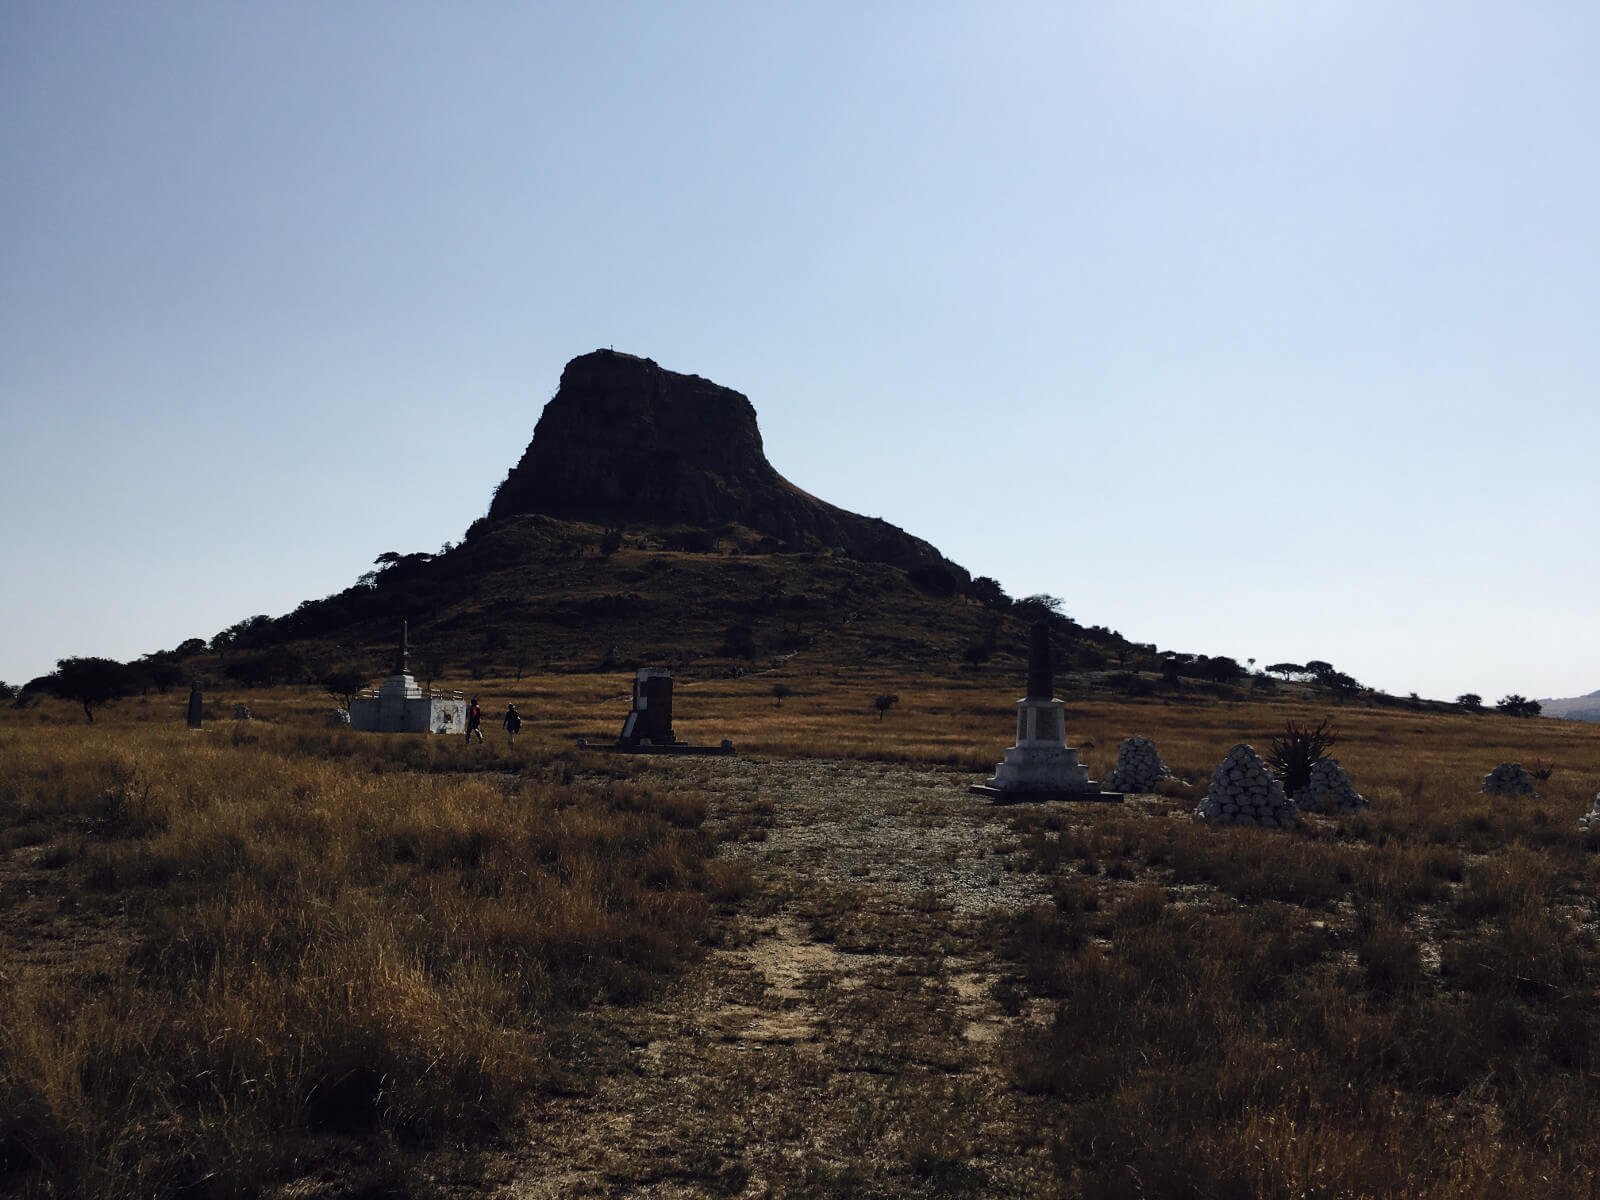 The cairns to the dead on the saddle of Isandhlwana hill. The Sphinx like shape of the mountain cast a sense of foreboding on the 24th Regiment of Foot as it resembled the insignia on their cap badges